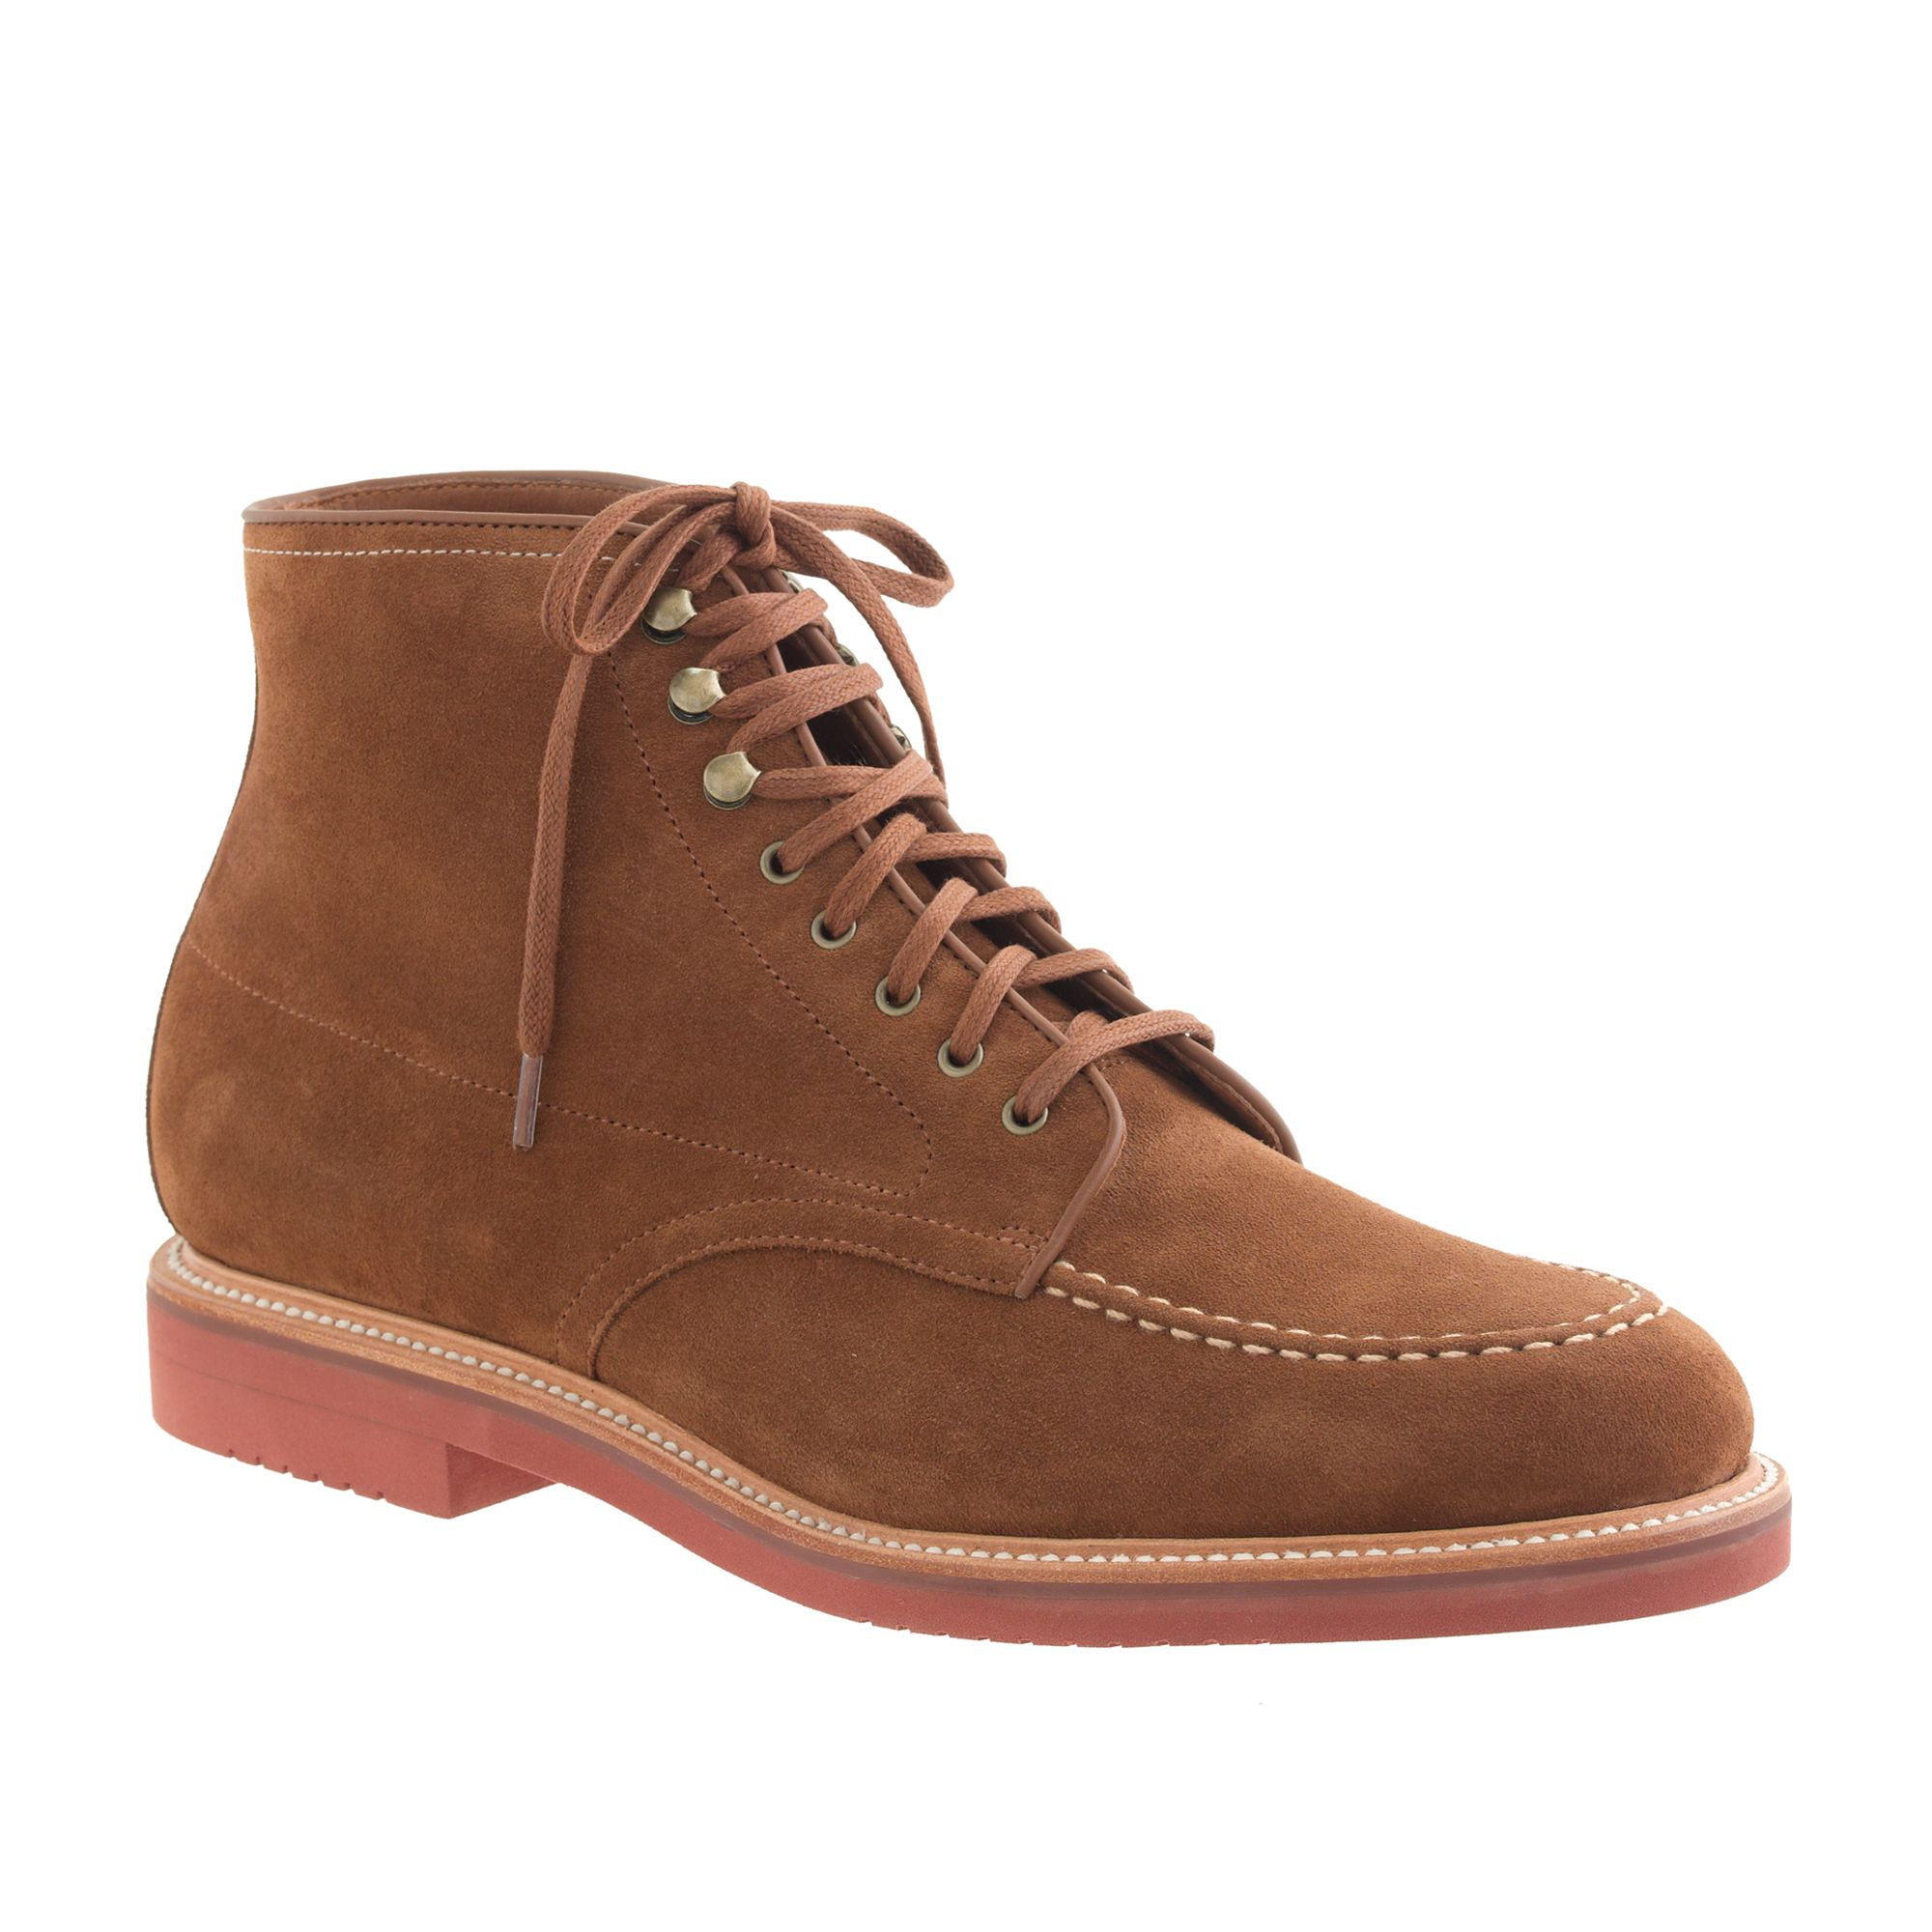 Kenton suede pacer boots in red for men acorn lyst for Jcrew com